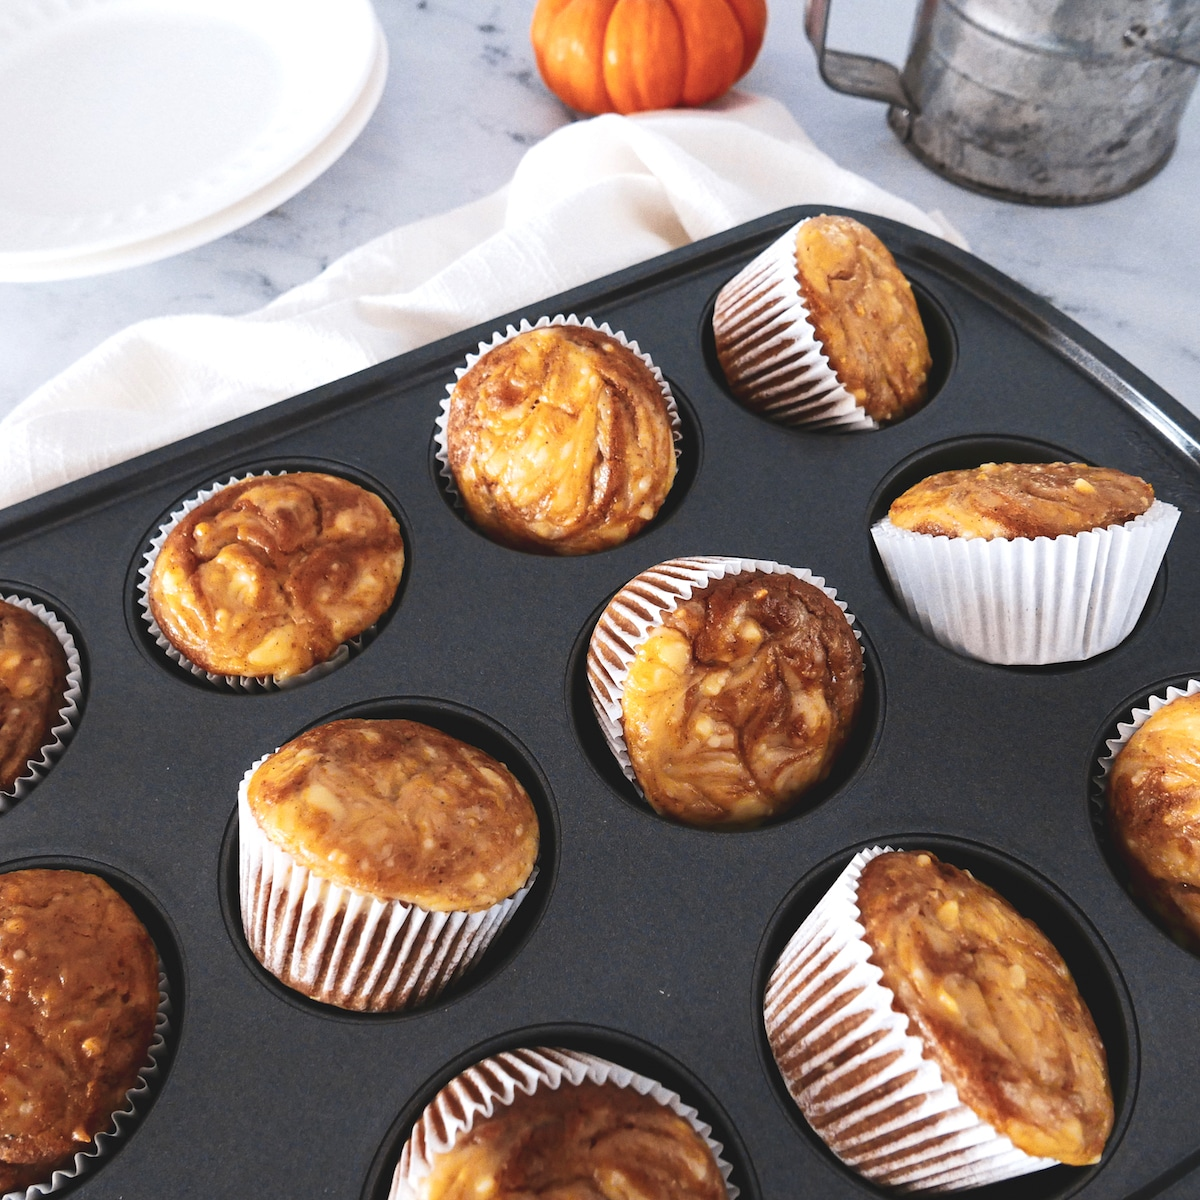 pumpkin cream cheese swirl muffins askew in tin with flour sifter and mini pumpkin in background